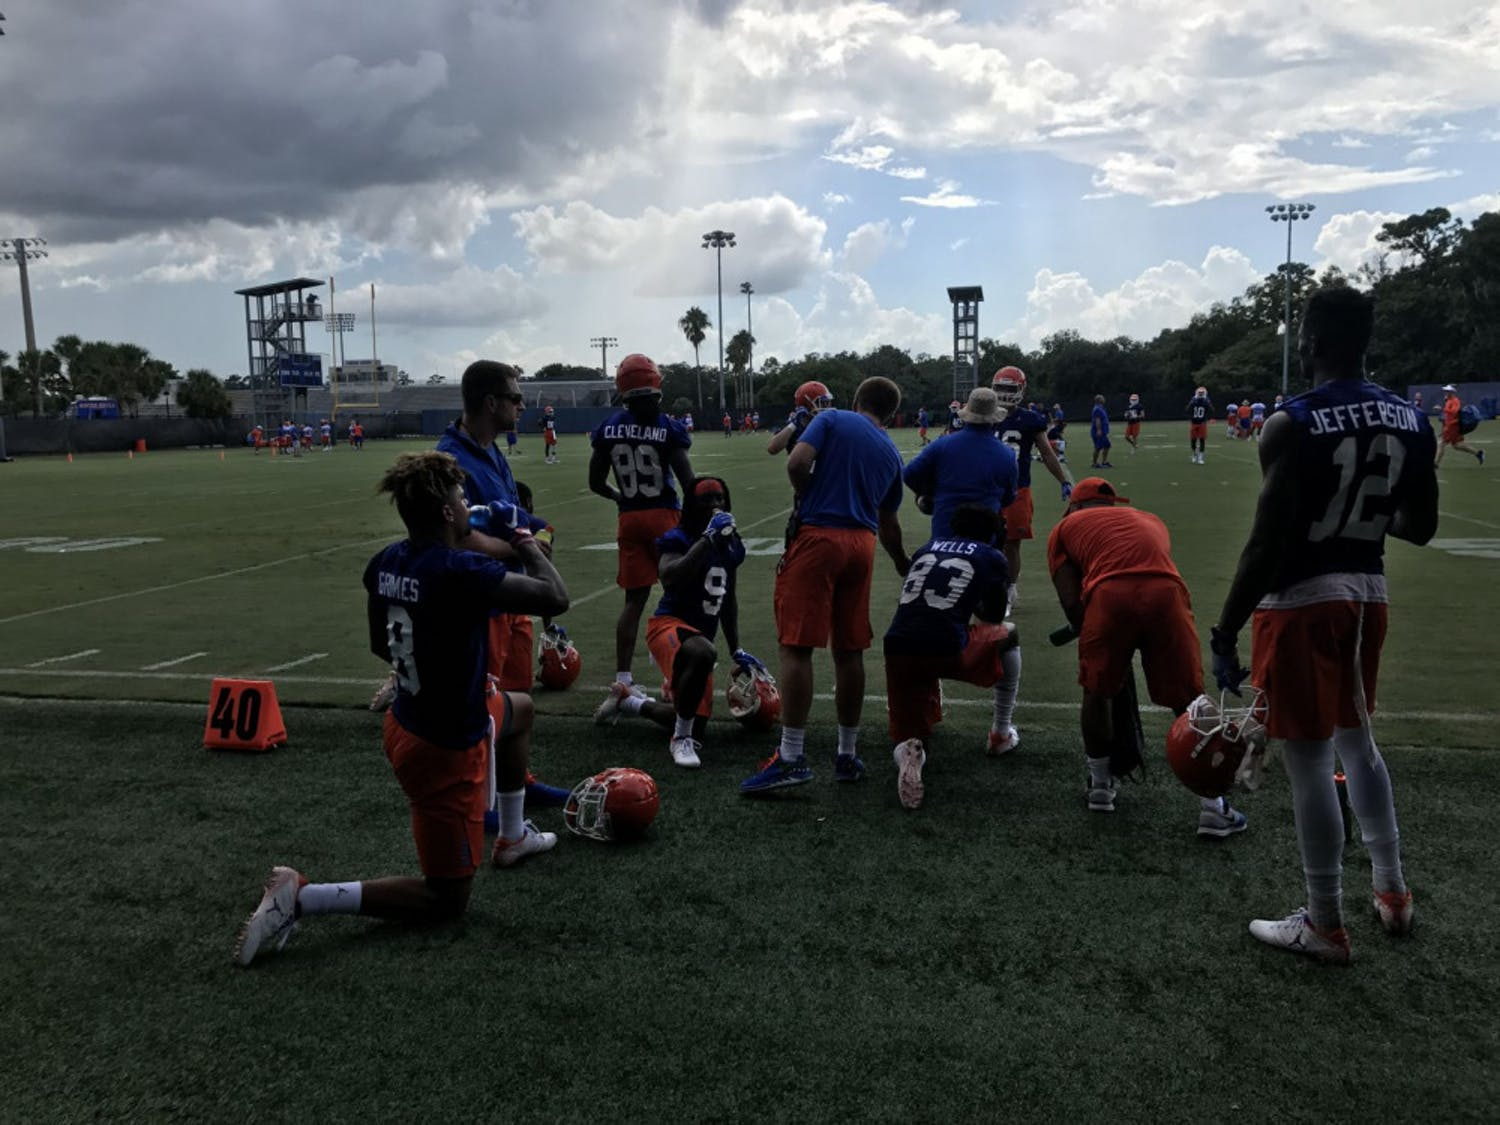 A unit of Florida wide receivers, including transfers Van Jefferson (12) and Trevon Grimes (8), rests during Day 1 of fall camp after catching passes from the quarterbacks.